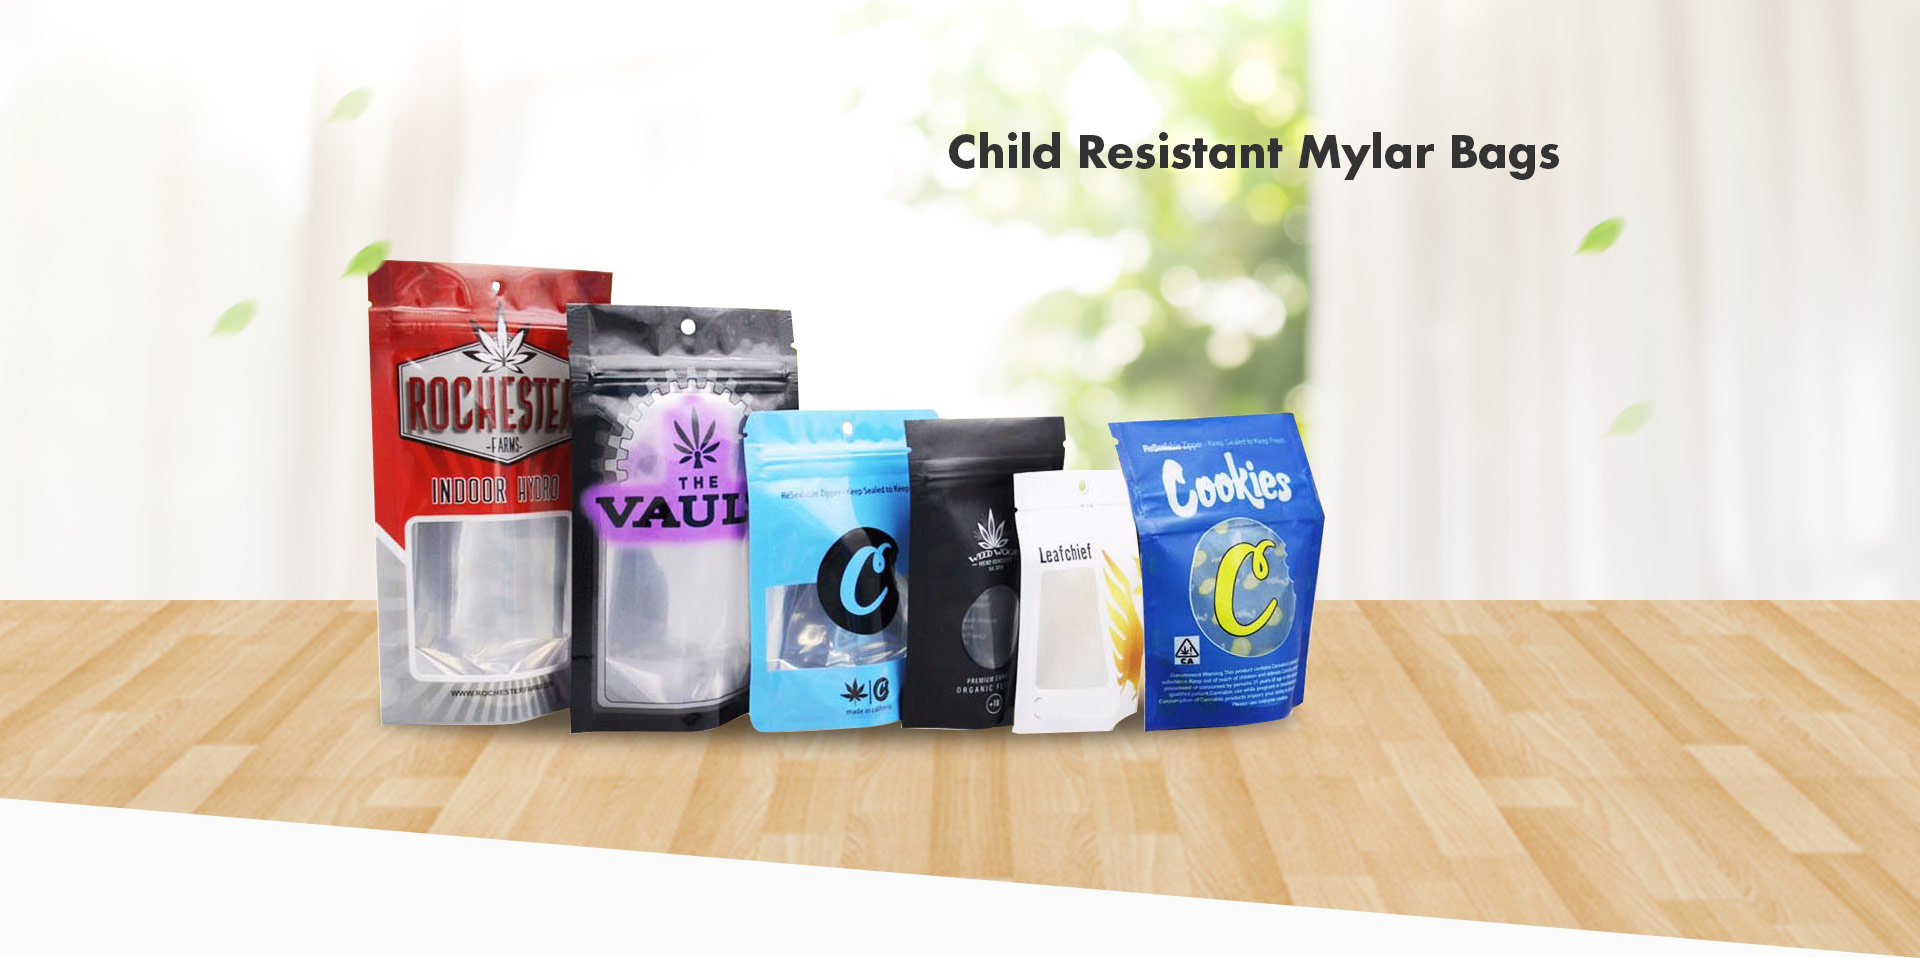 Custom Printed Child Resistant Mylar Bags